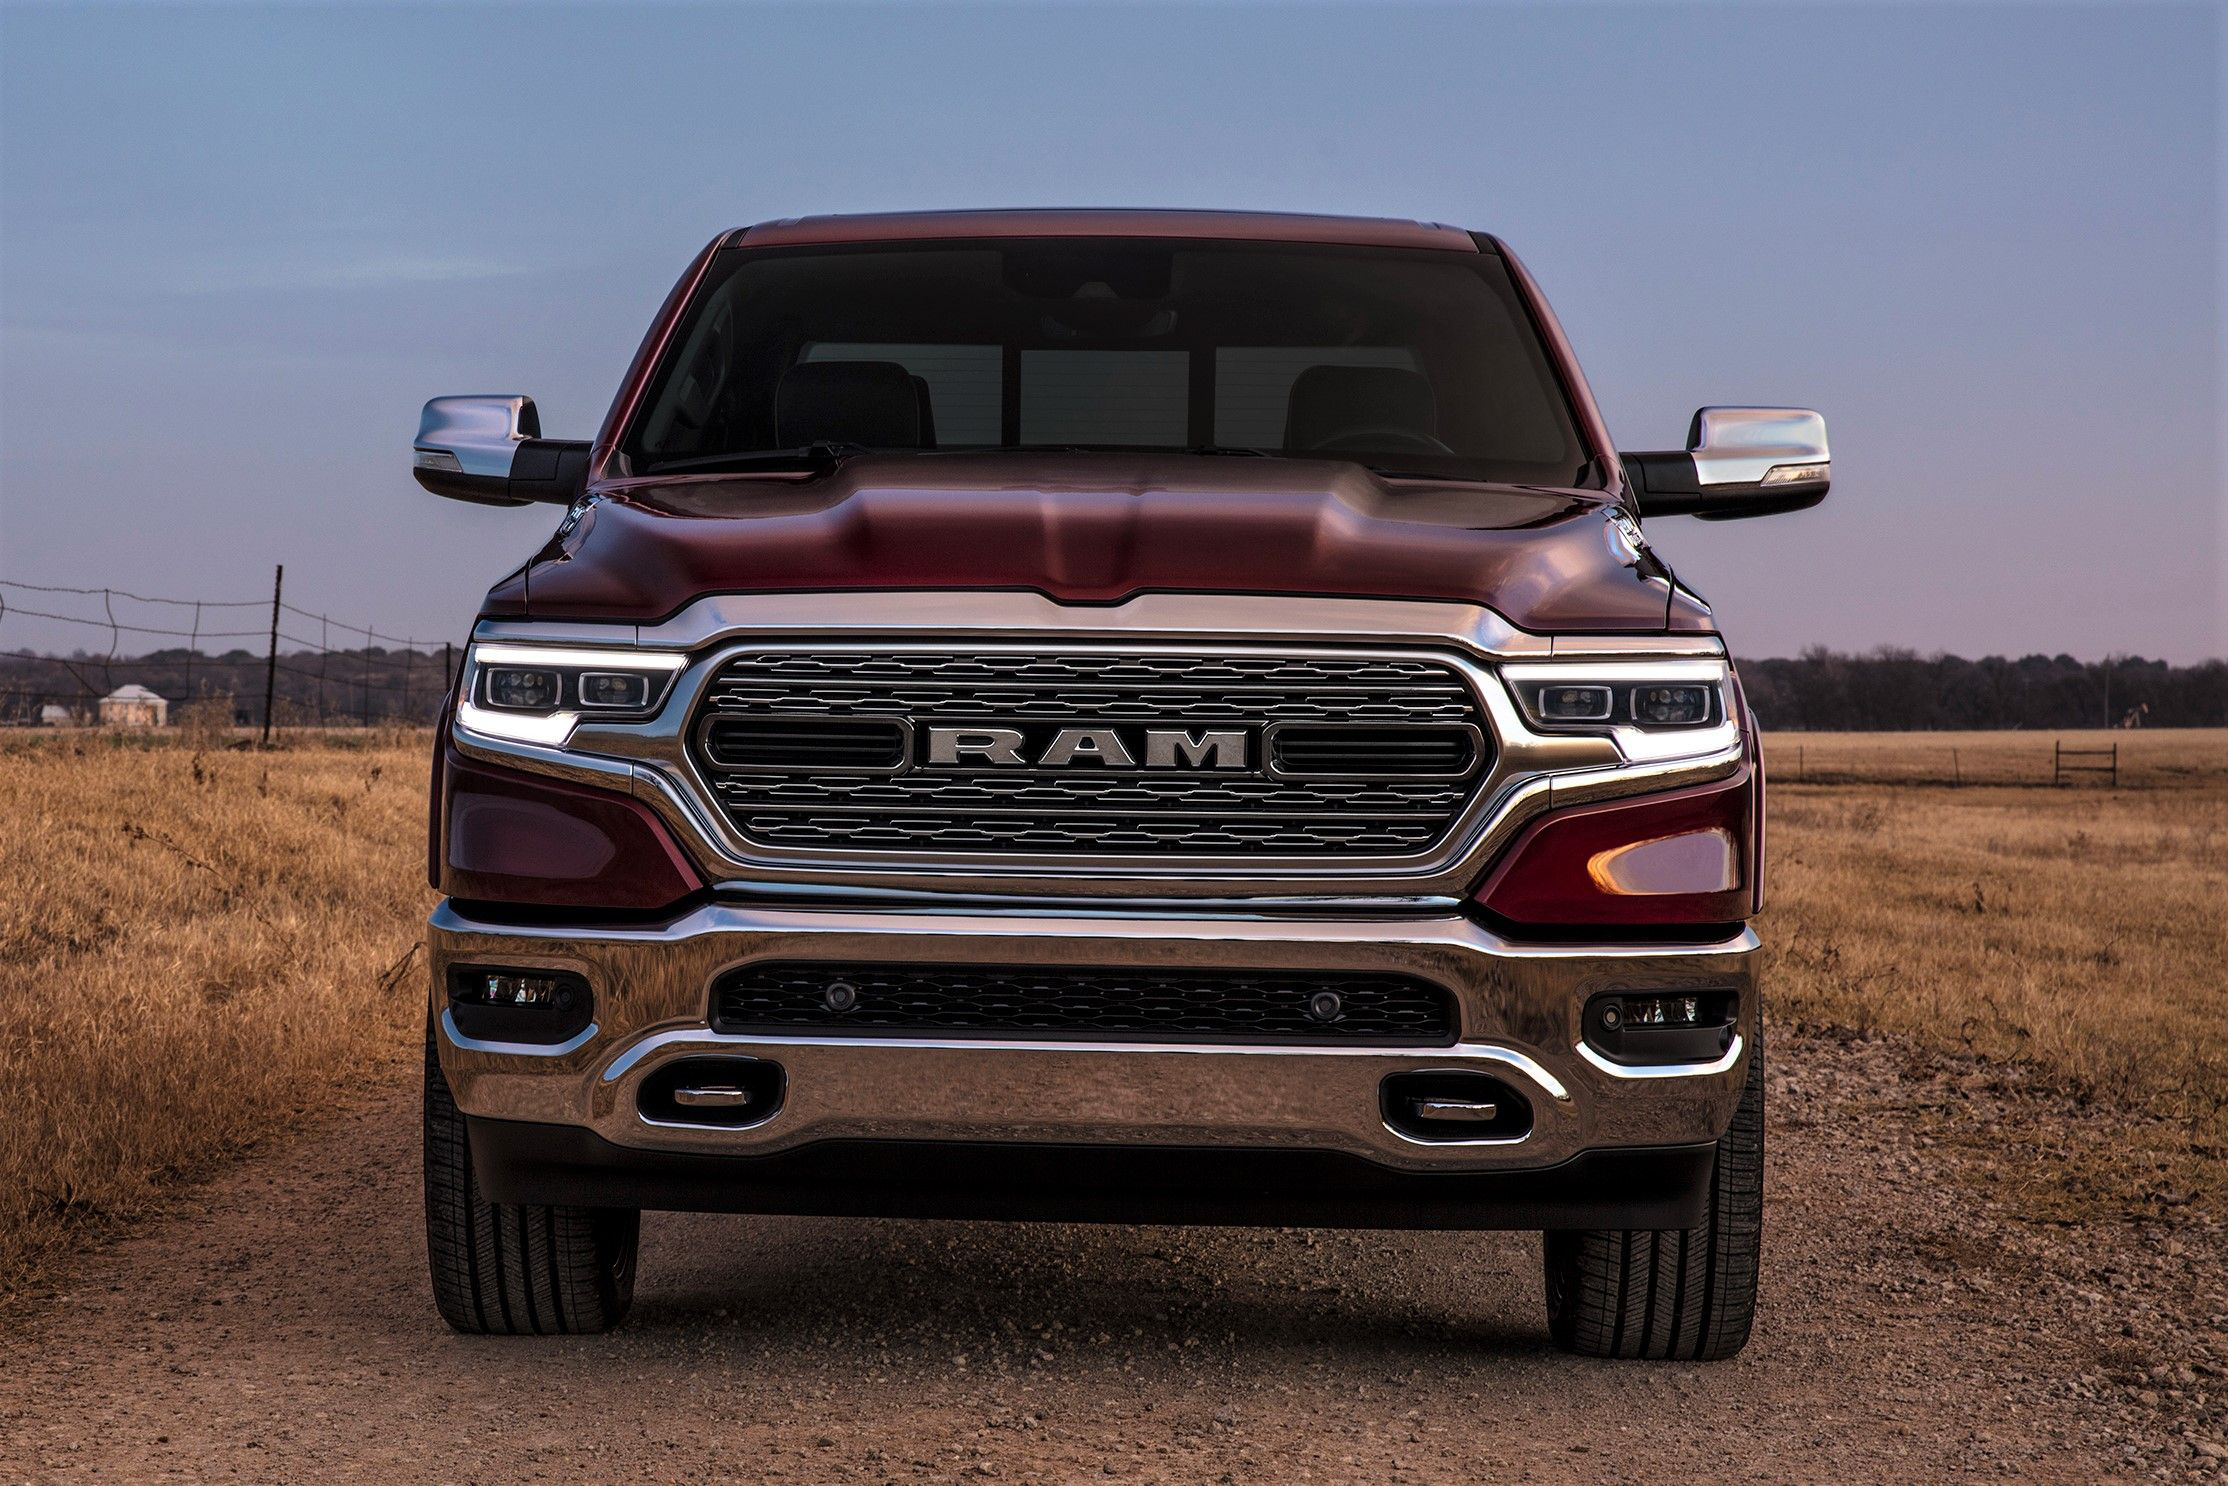 ram unveils redesigned 2019 1500 trucks with new look less weight more tech. Black Bedroom Furniture Sets. Home Design Ideas